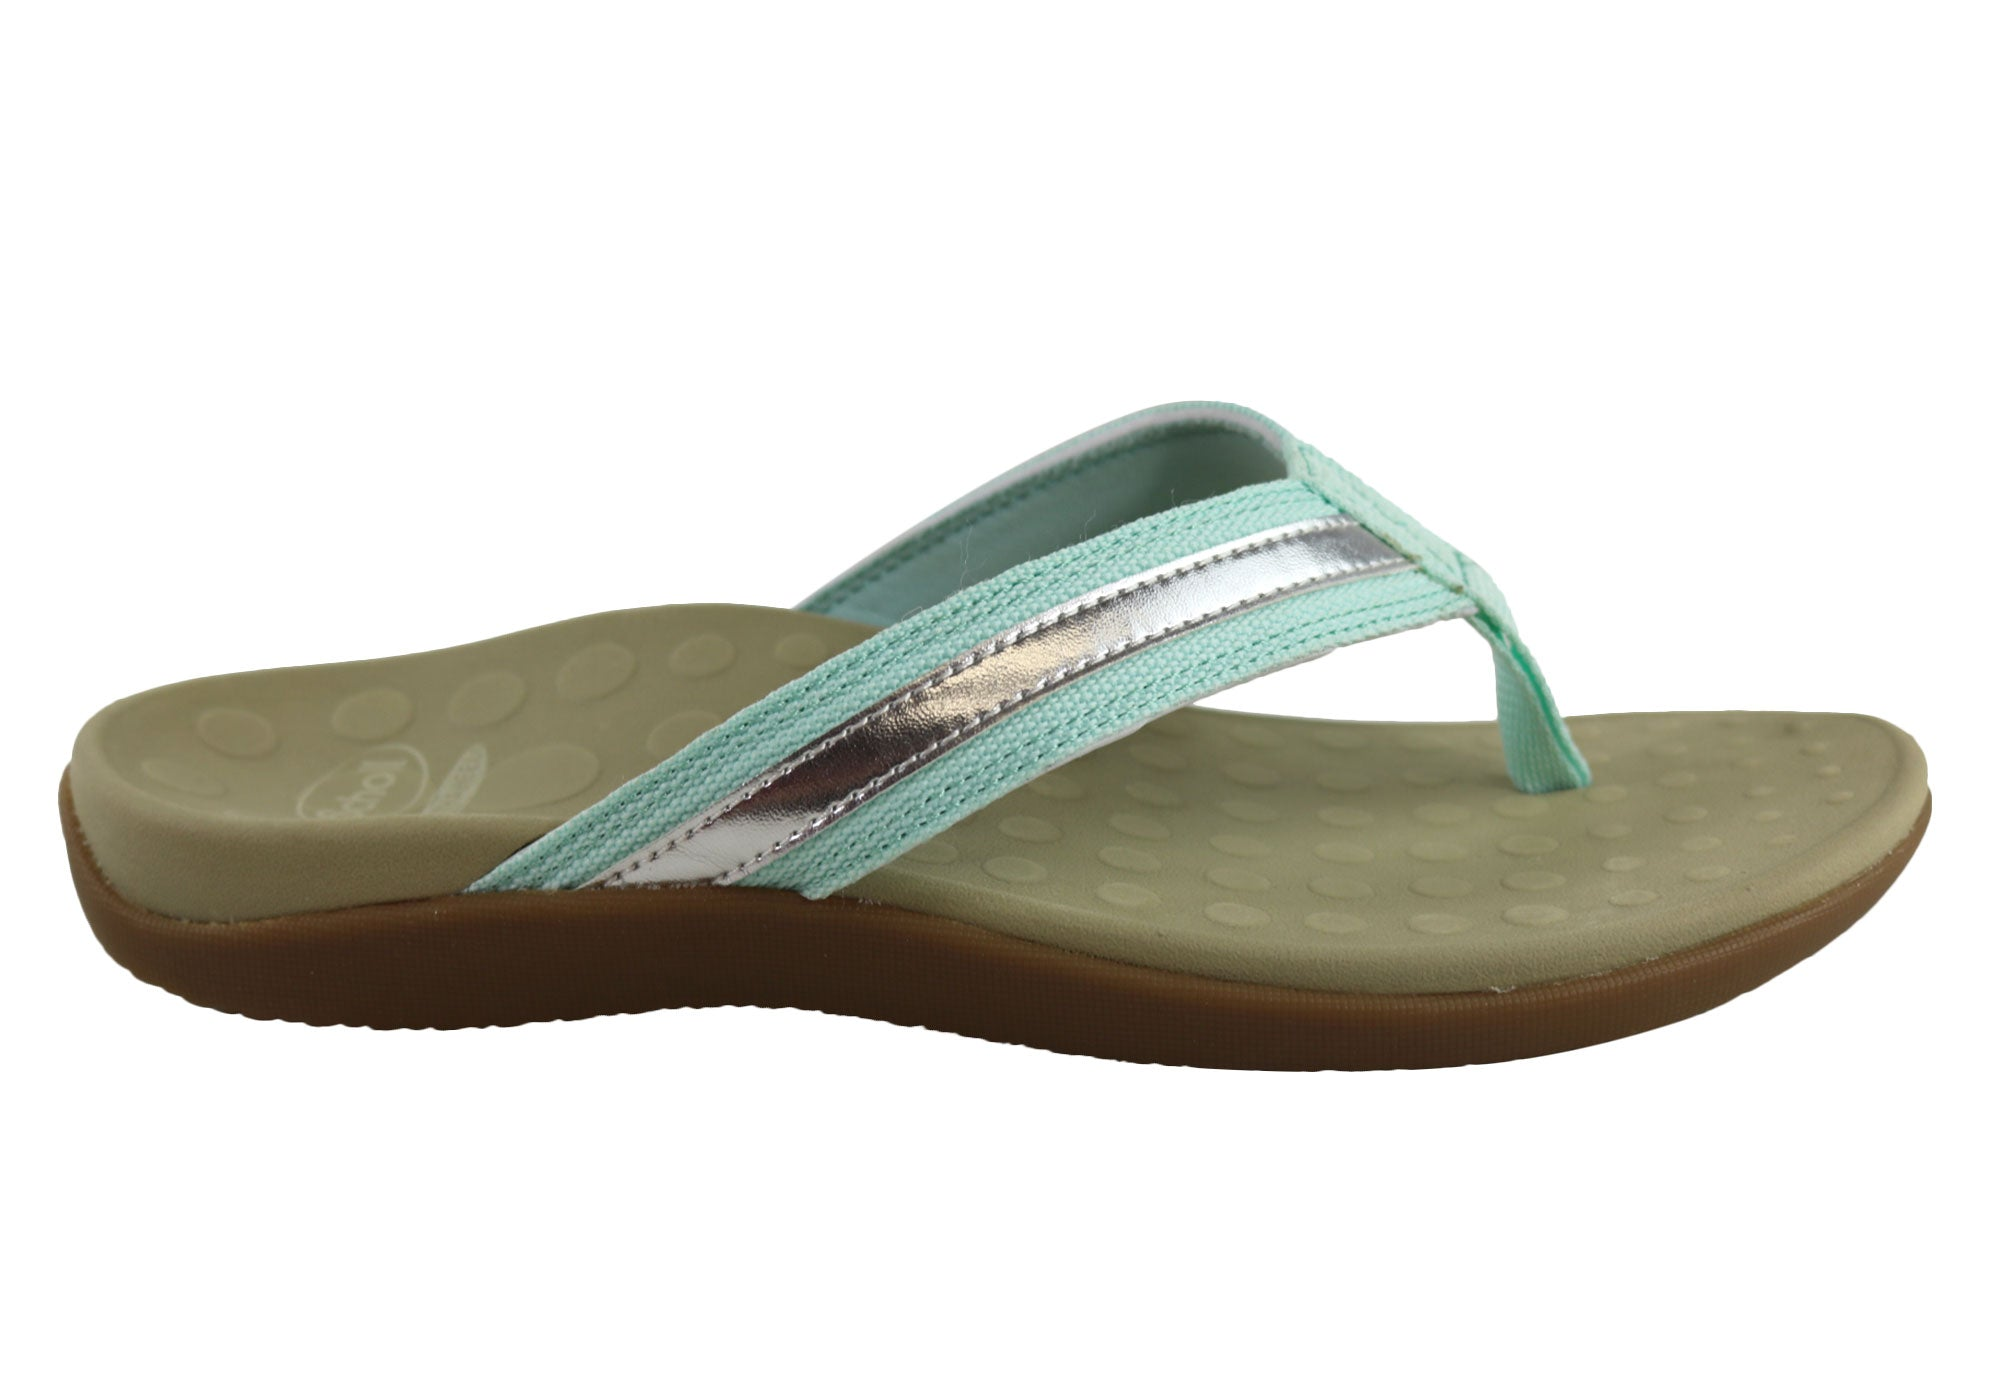 17c9a39d2 Home Scholl Orthaheel Tide II Womens Comfort Orthotic Flip Flop Thongs.  Light Blue Silver ...